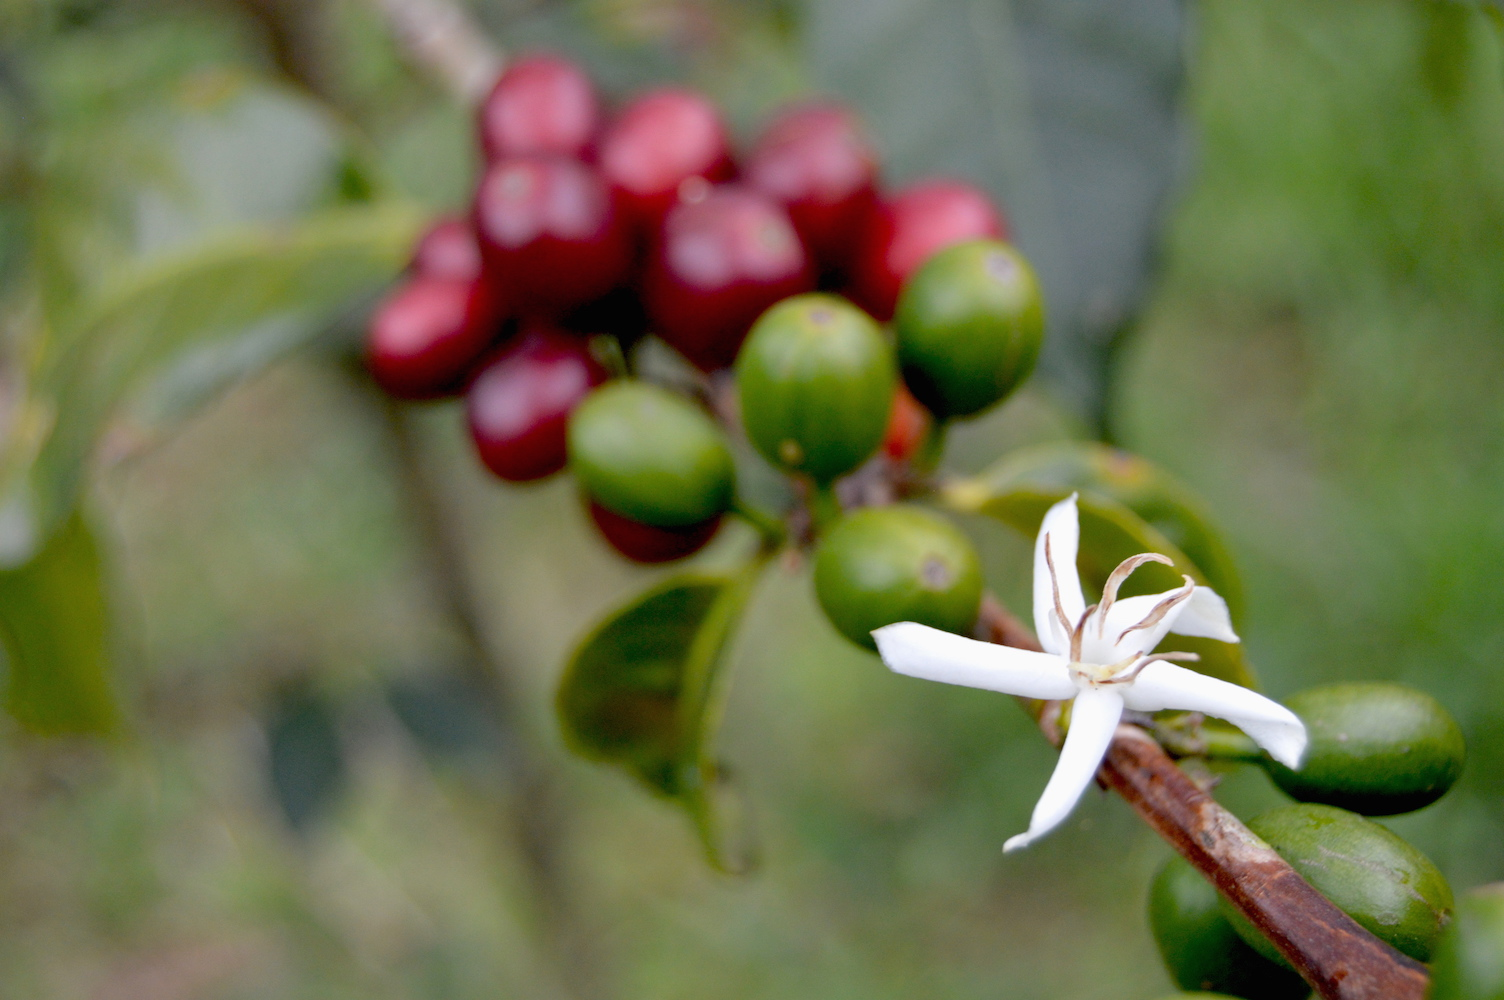 The beauty of the spectrum of coffee plant ripeness